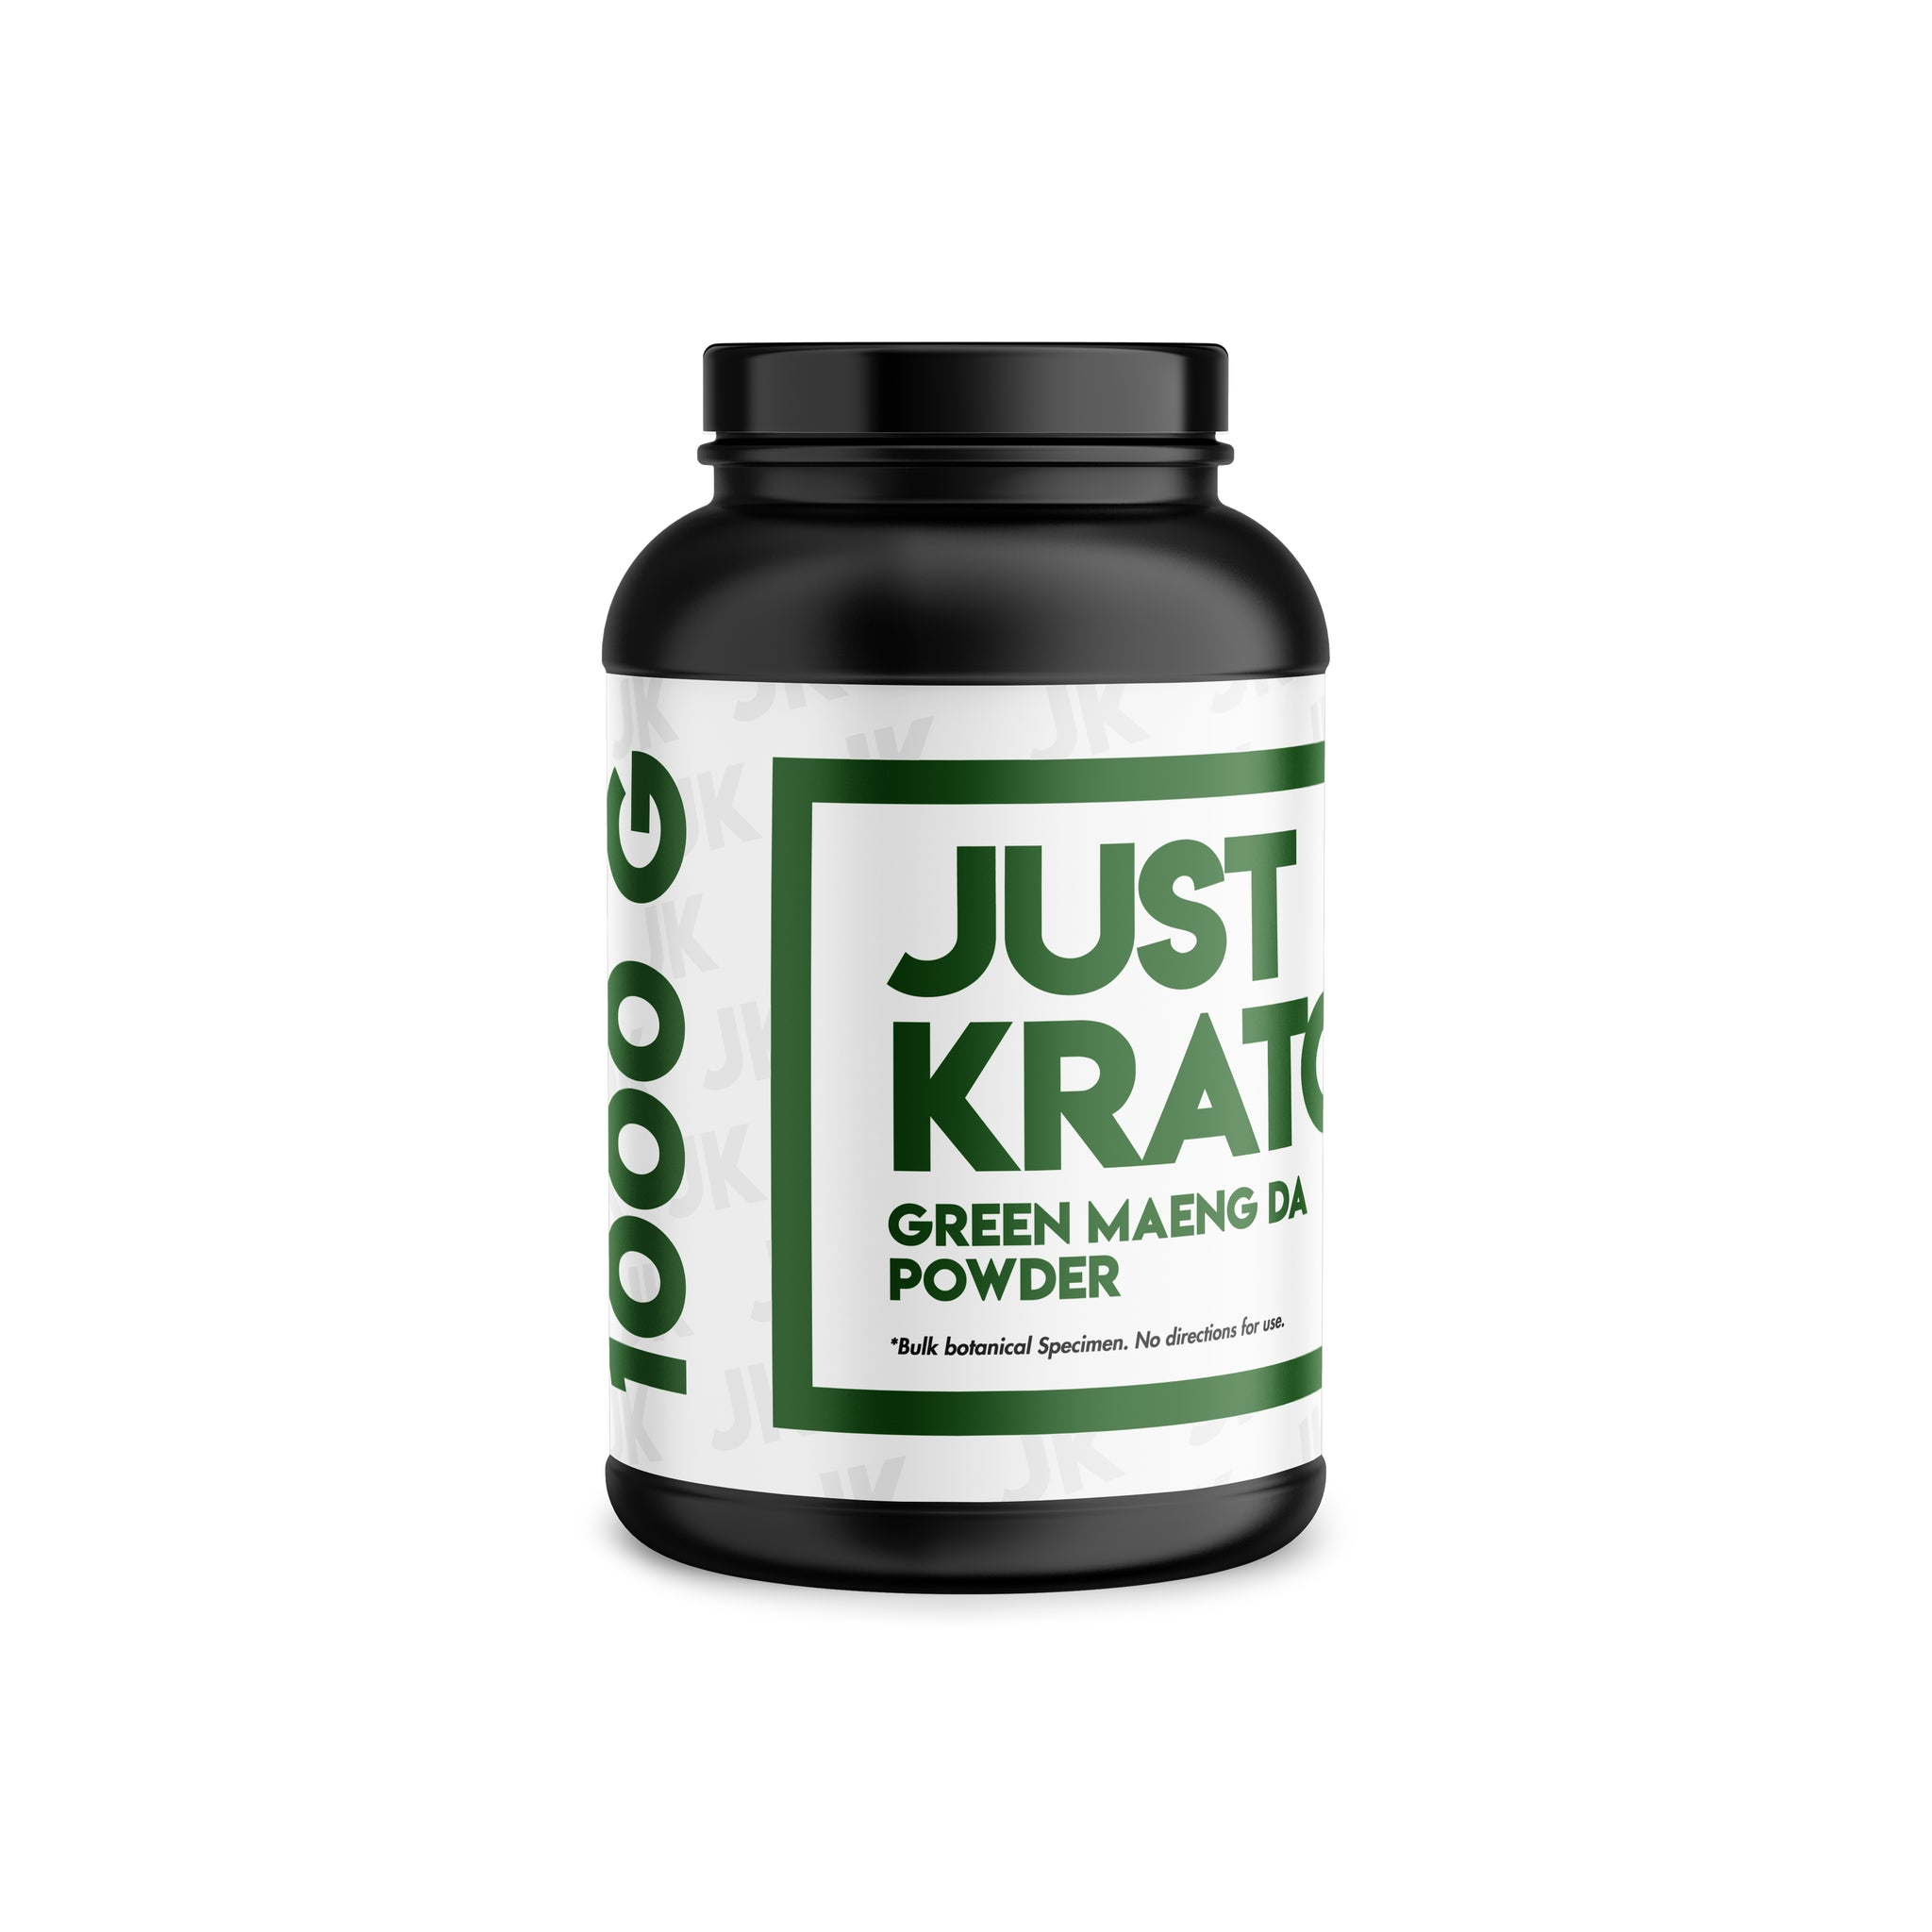 Just Kratom - Green Maeng Da Powder (Multiple Sizes)